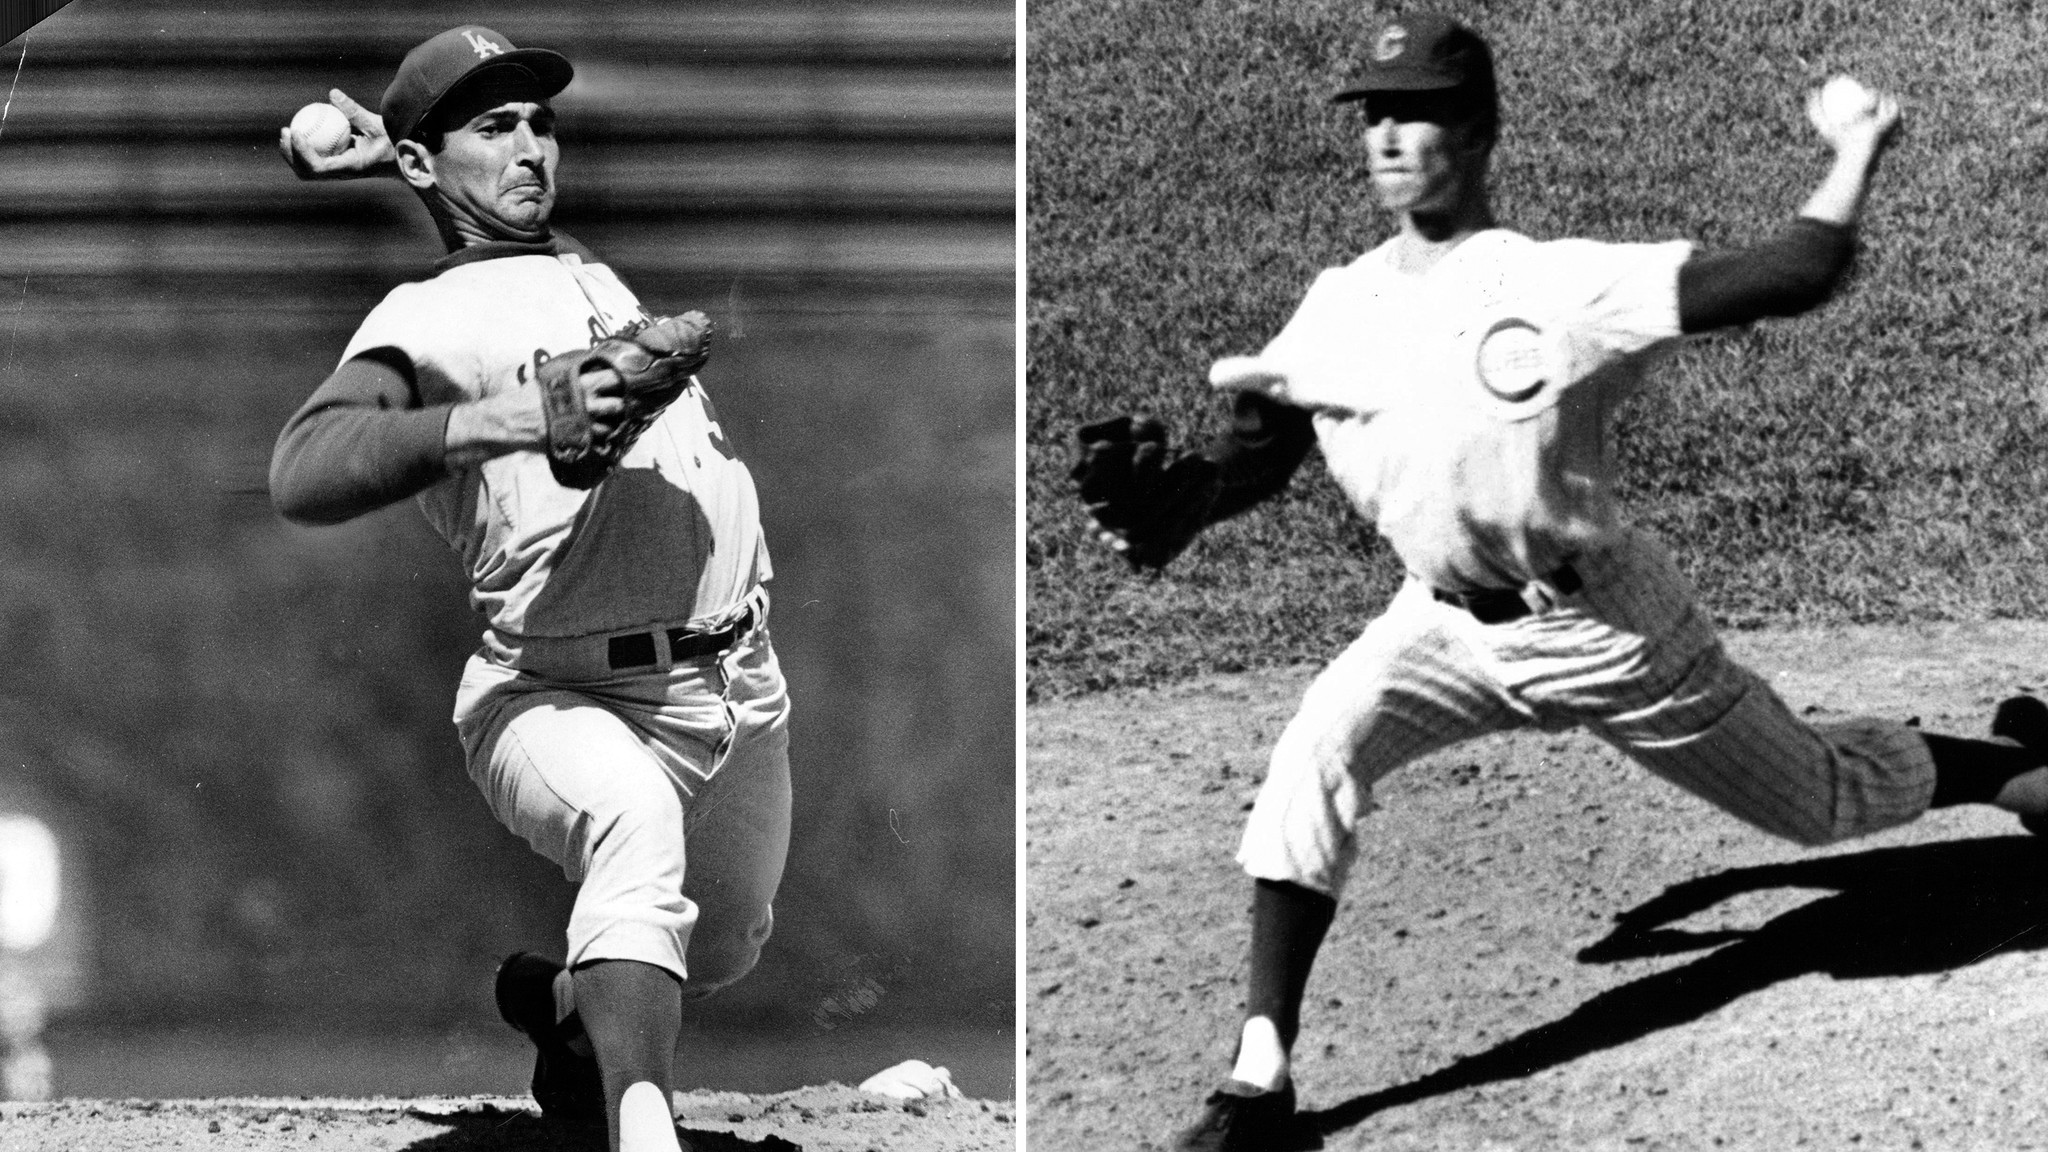 Sandy Koufax vs Ken Holtzman The 1966 matchup of two Jewish pitching stars  Chicago Tribune